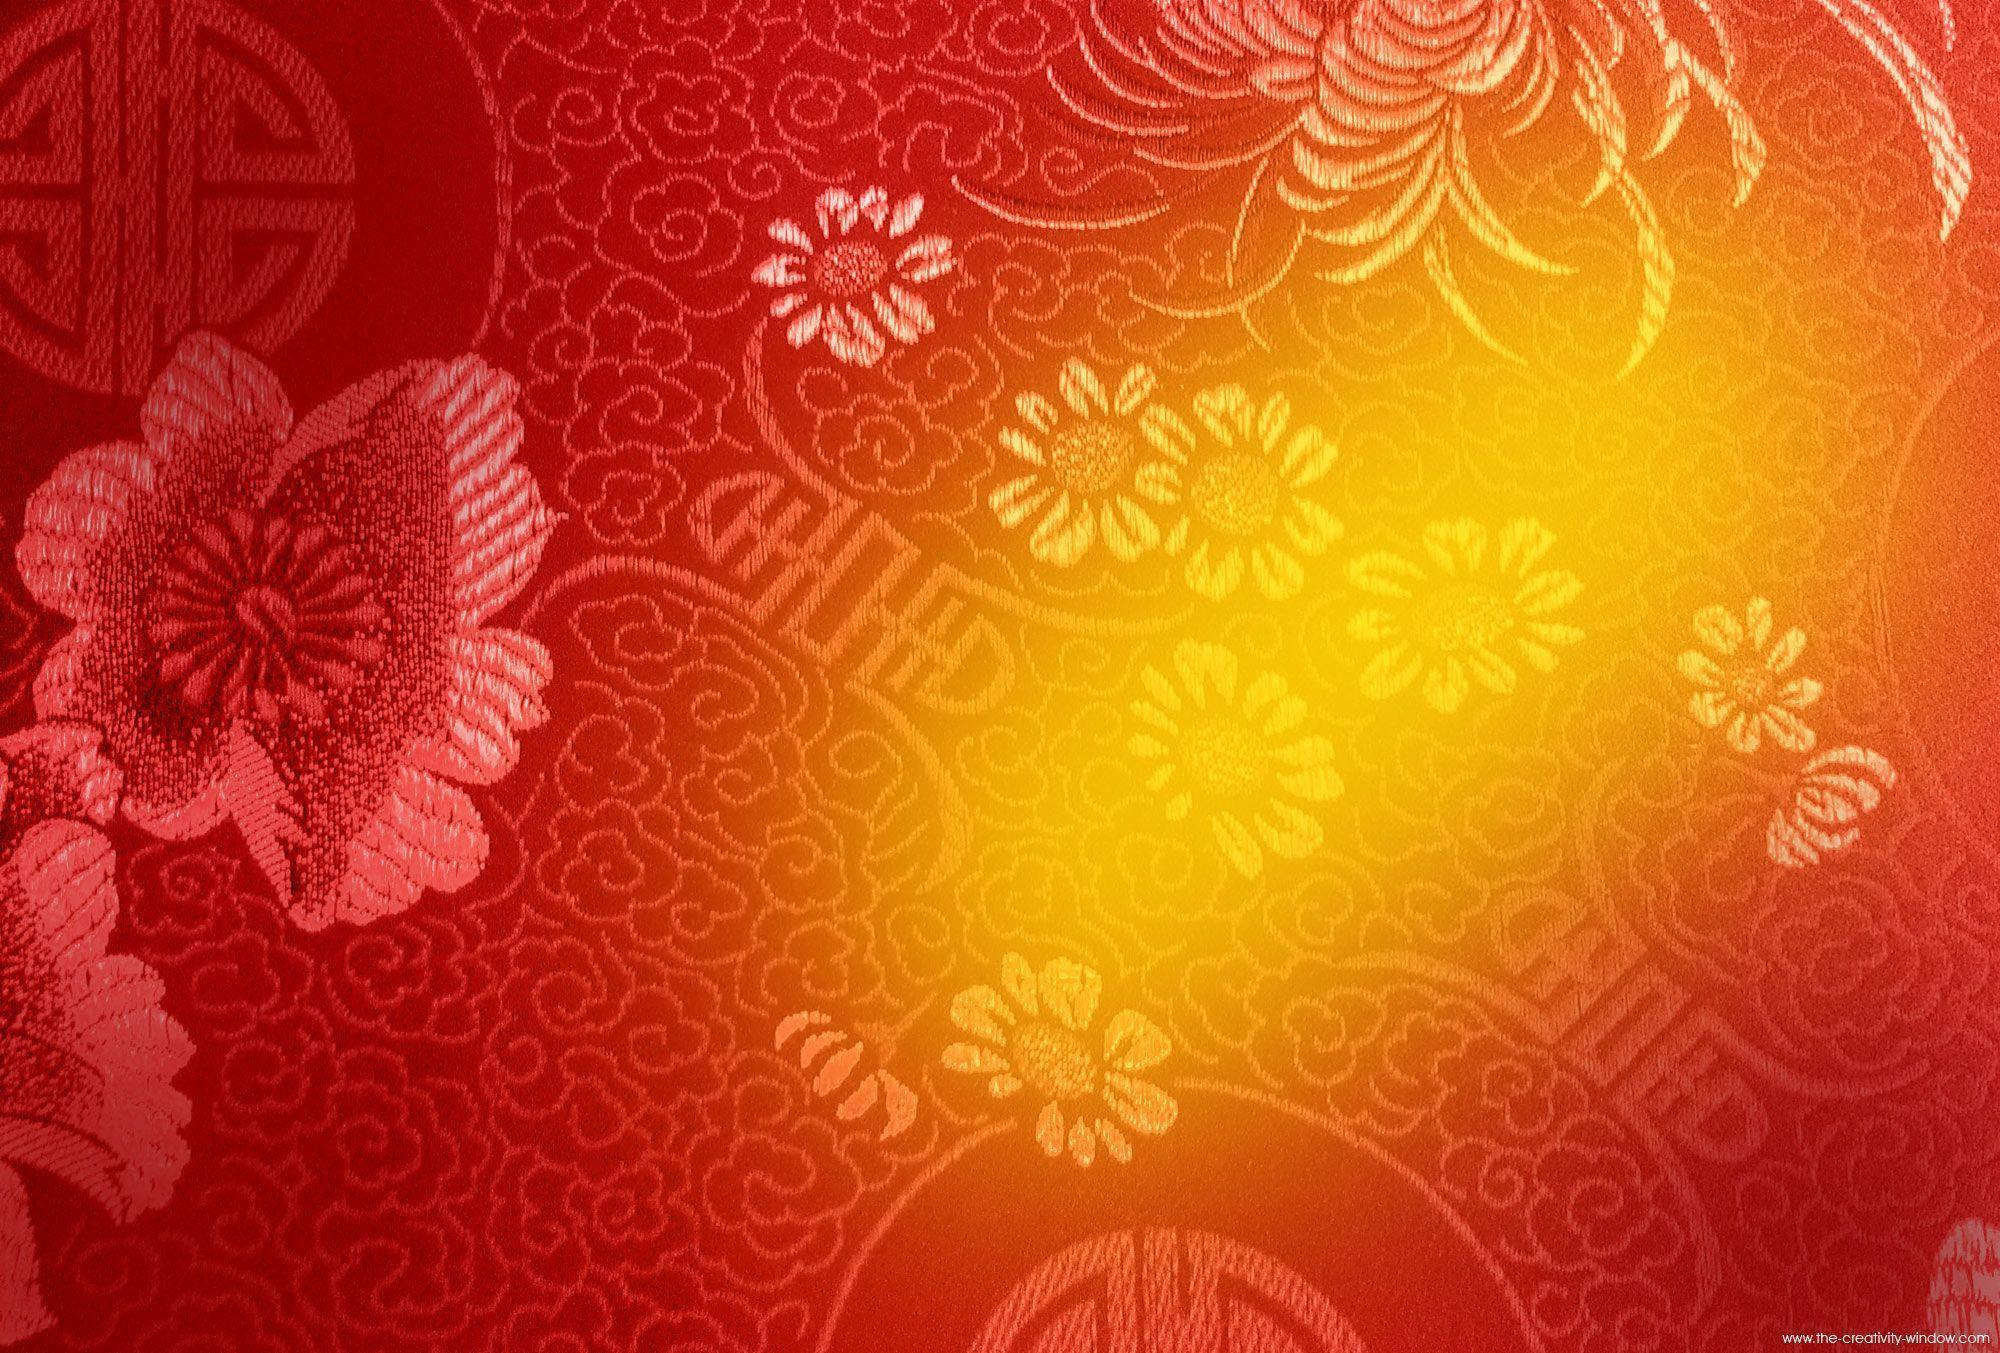 New Year Backgrounds Free - Wallpaper Cave